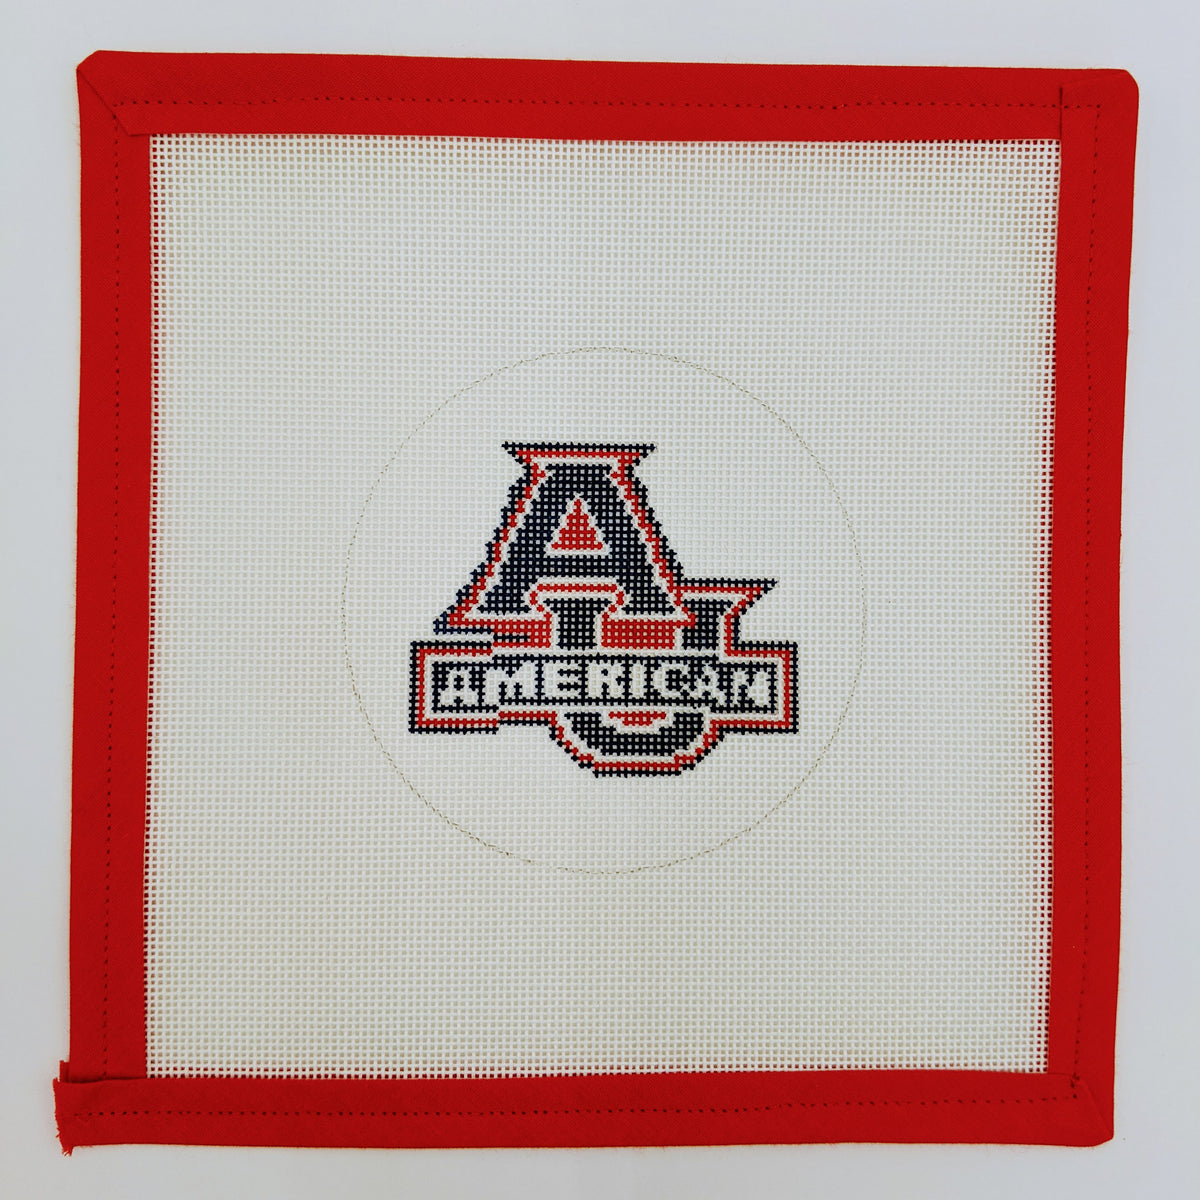 American University Logo ornament